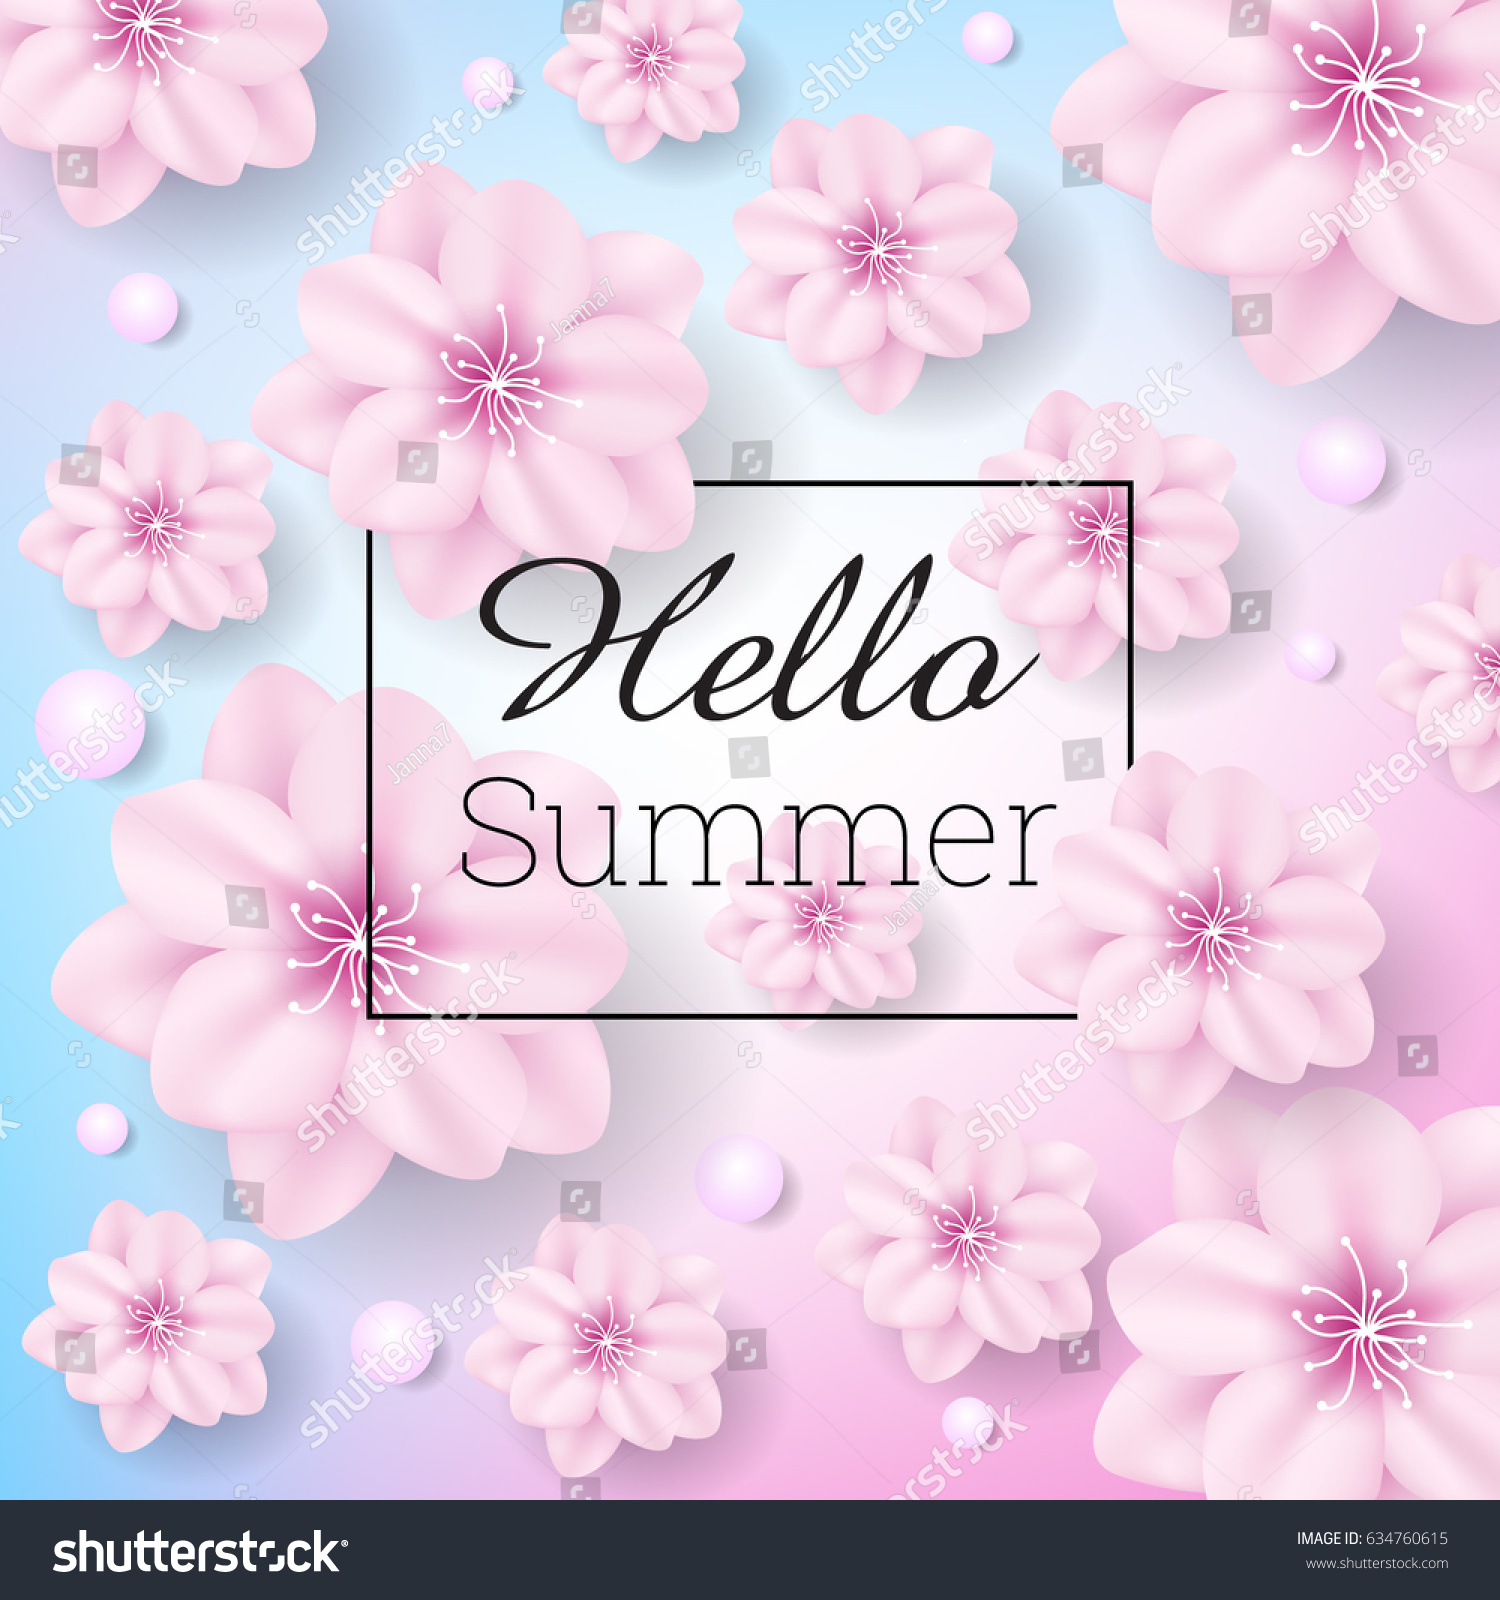 Attrayant Hello Summer Background With Pink Flowers